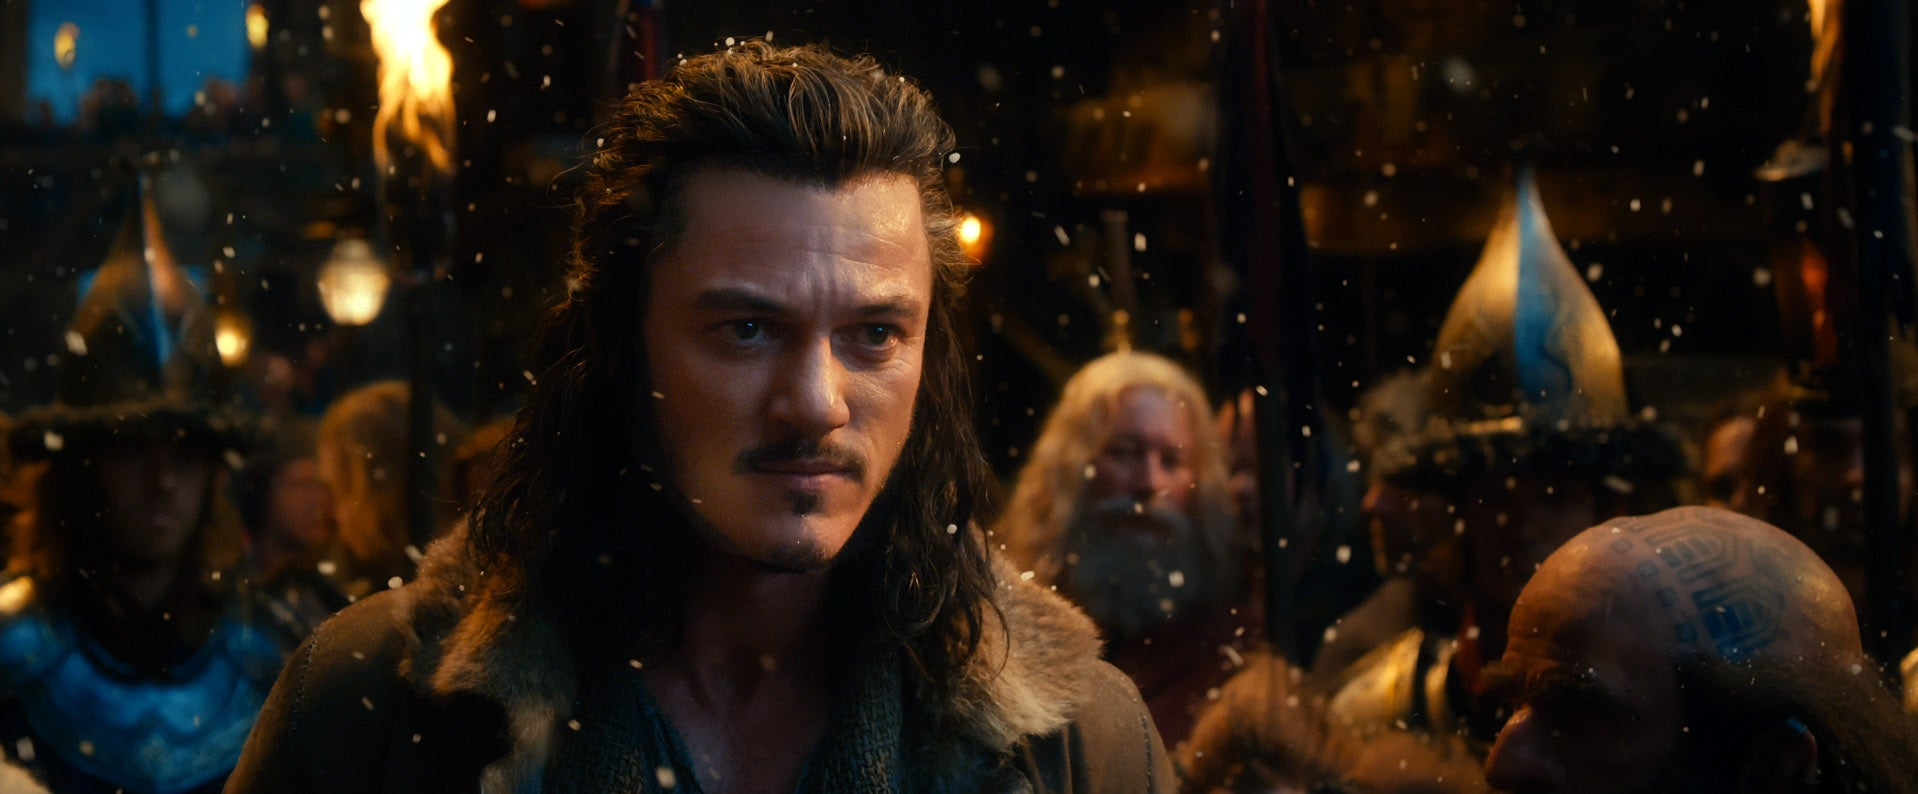 First Real Trailer For The Hobbit: Desolation of Smaug